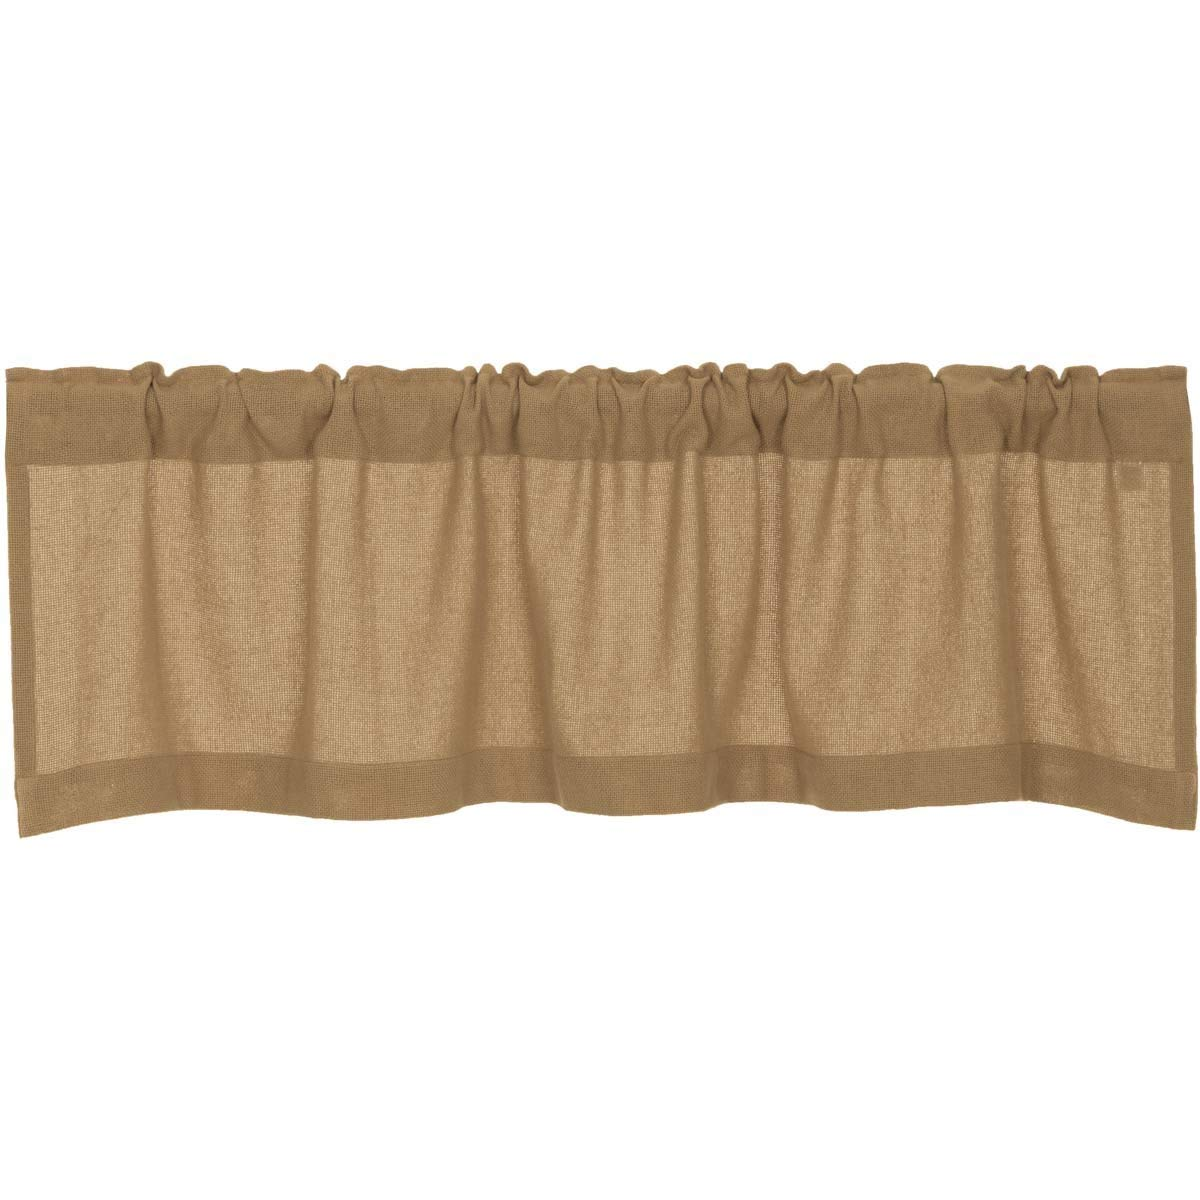 VHC Brands Burlap Natural Valance 16 x 60